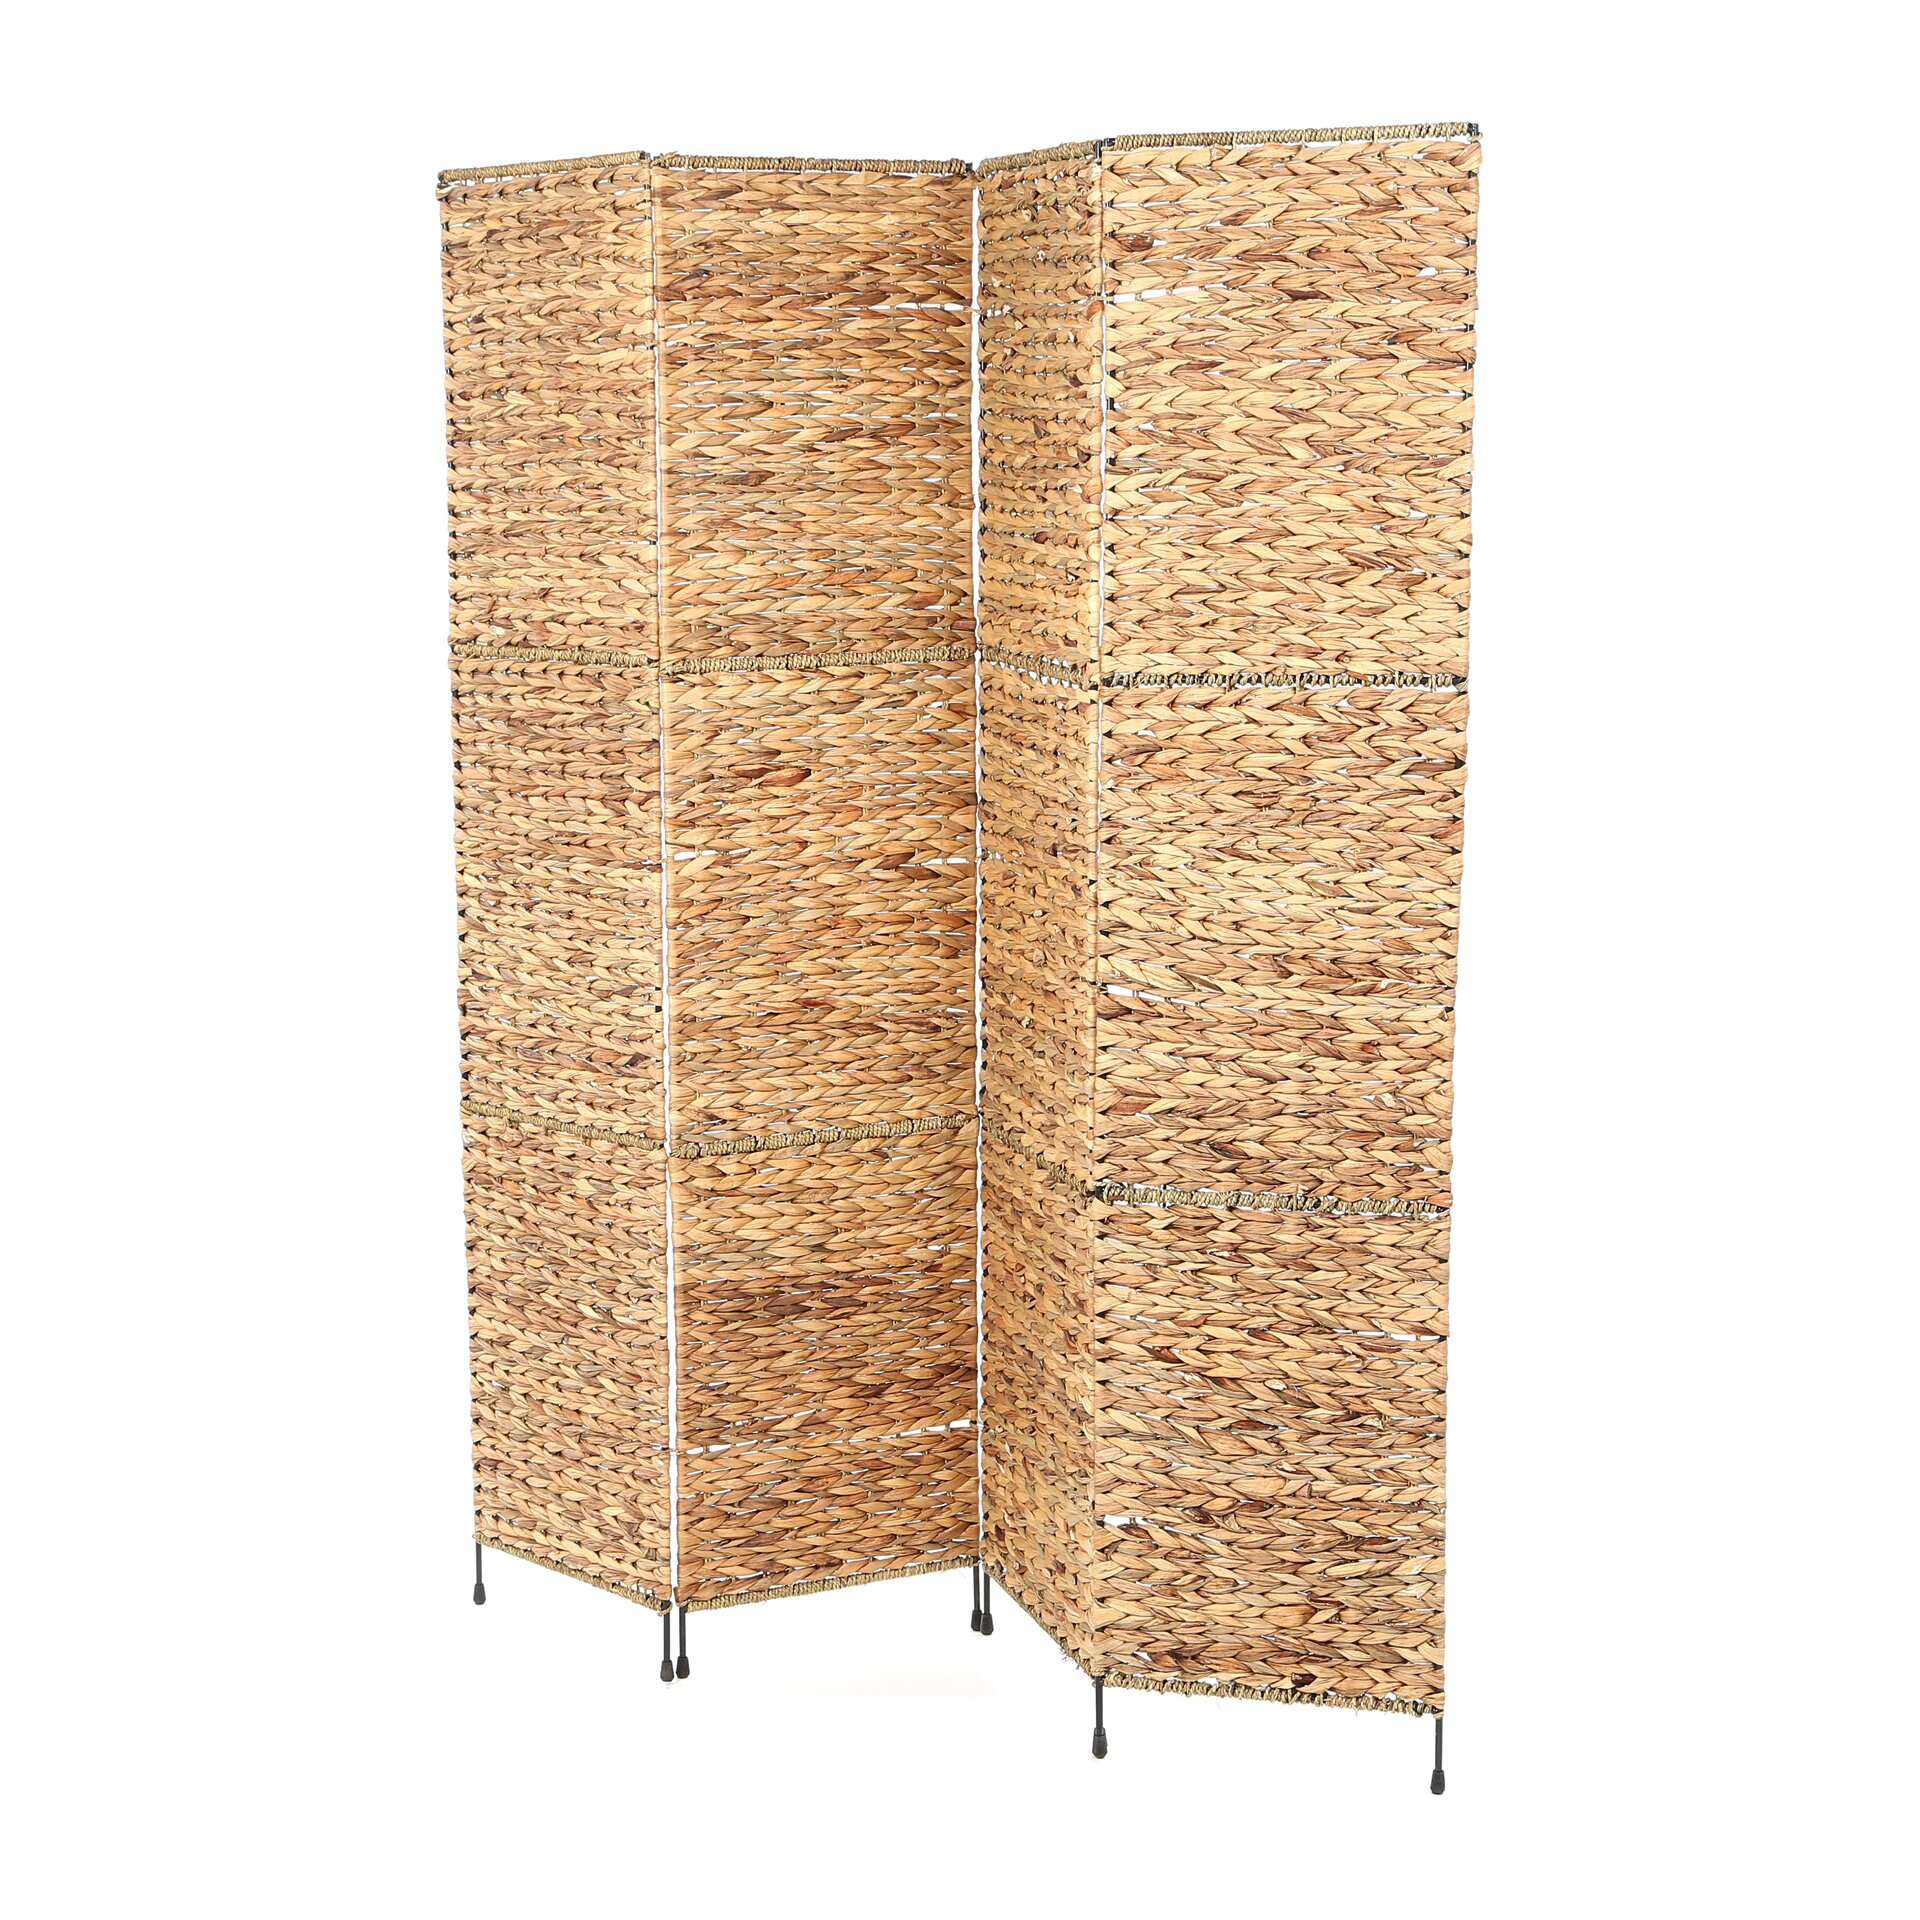 Free standing wall divider - Castine 67 X 60 Folding Screen 4 Panel Room Divider